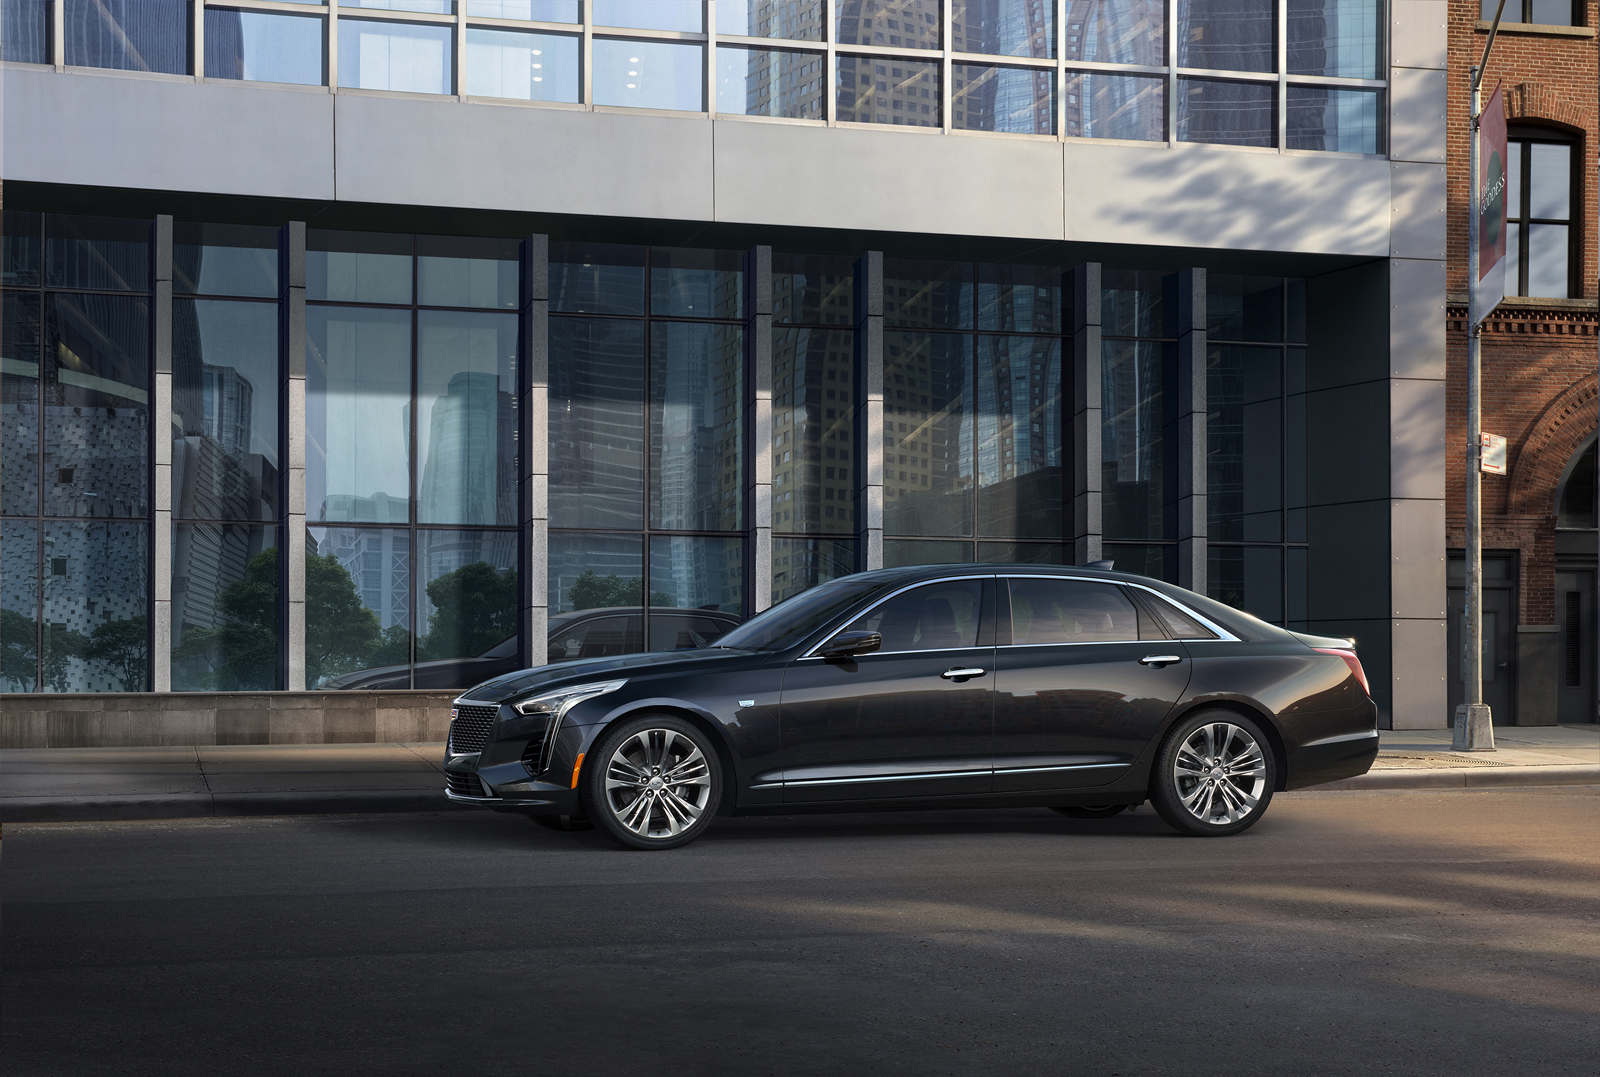 2019 Cadillac CT6 V-Sport Debuts With 550 HP Twin Turbo V8 ...